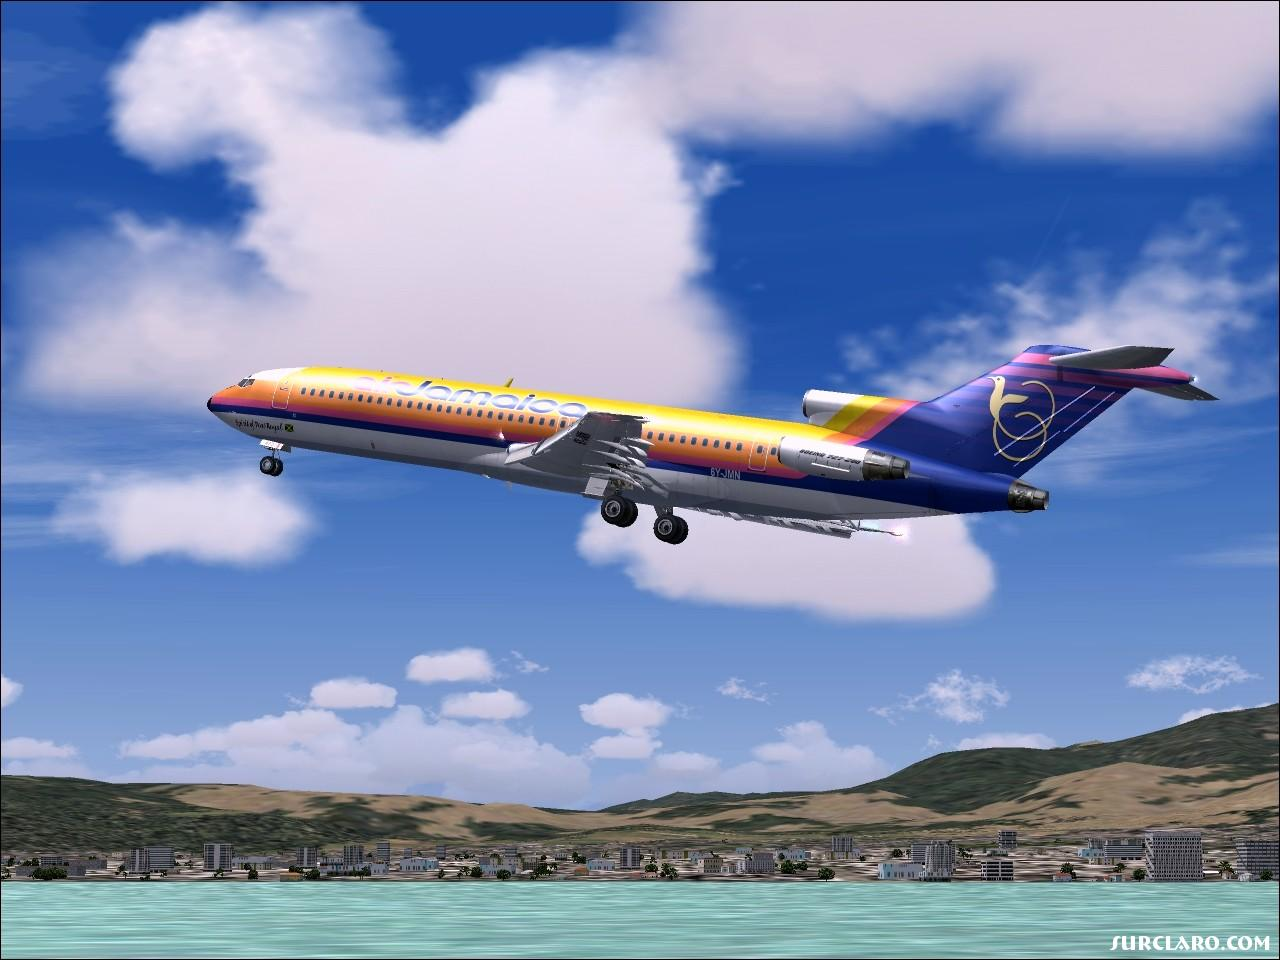 Fsx Wallpaper Hd Fs2004 Air Jamaica 727 7372 Surclaro Photos